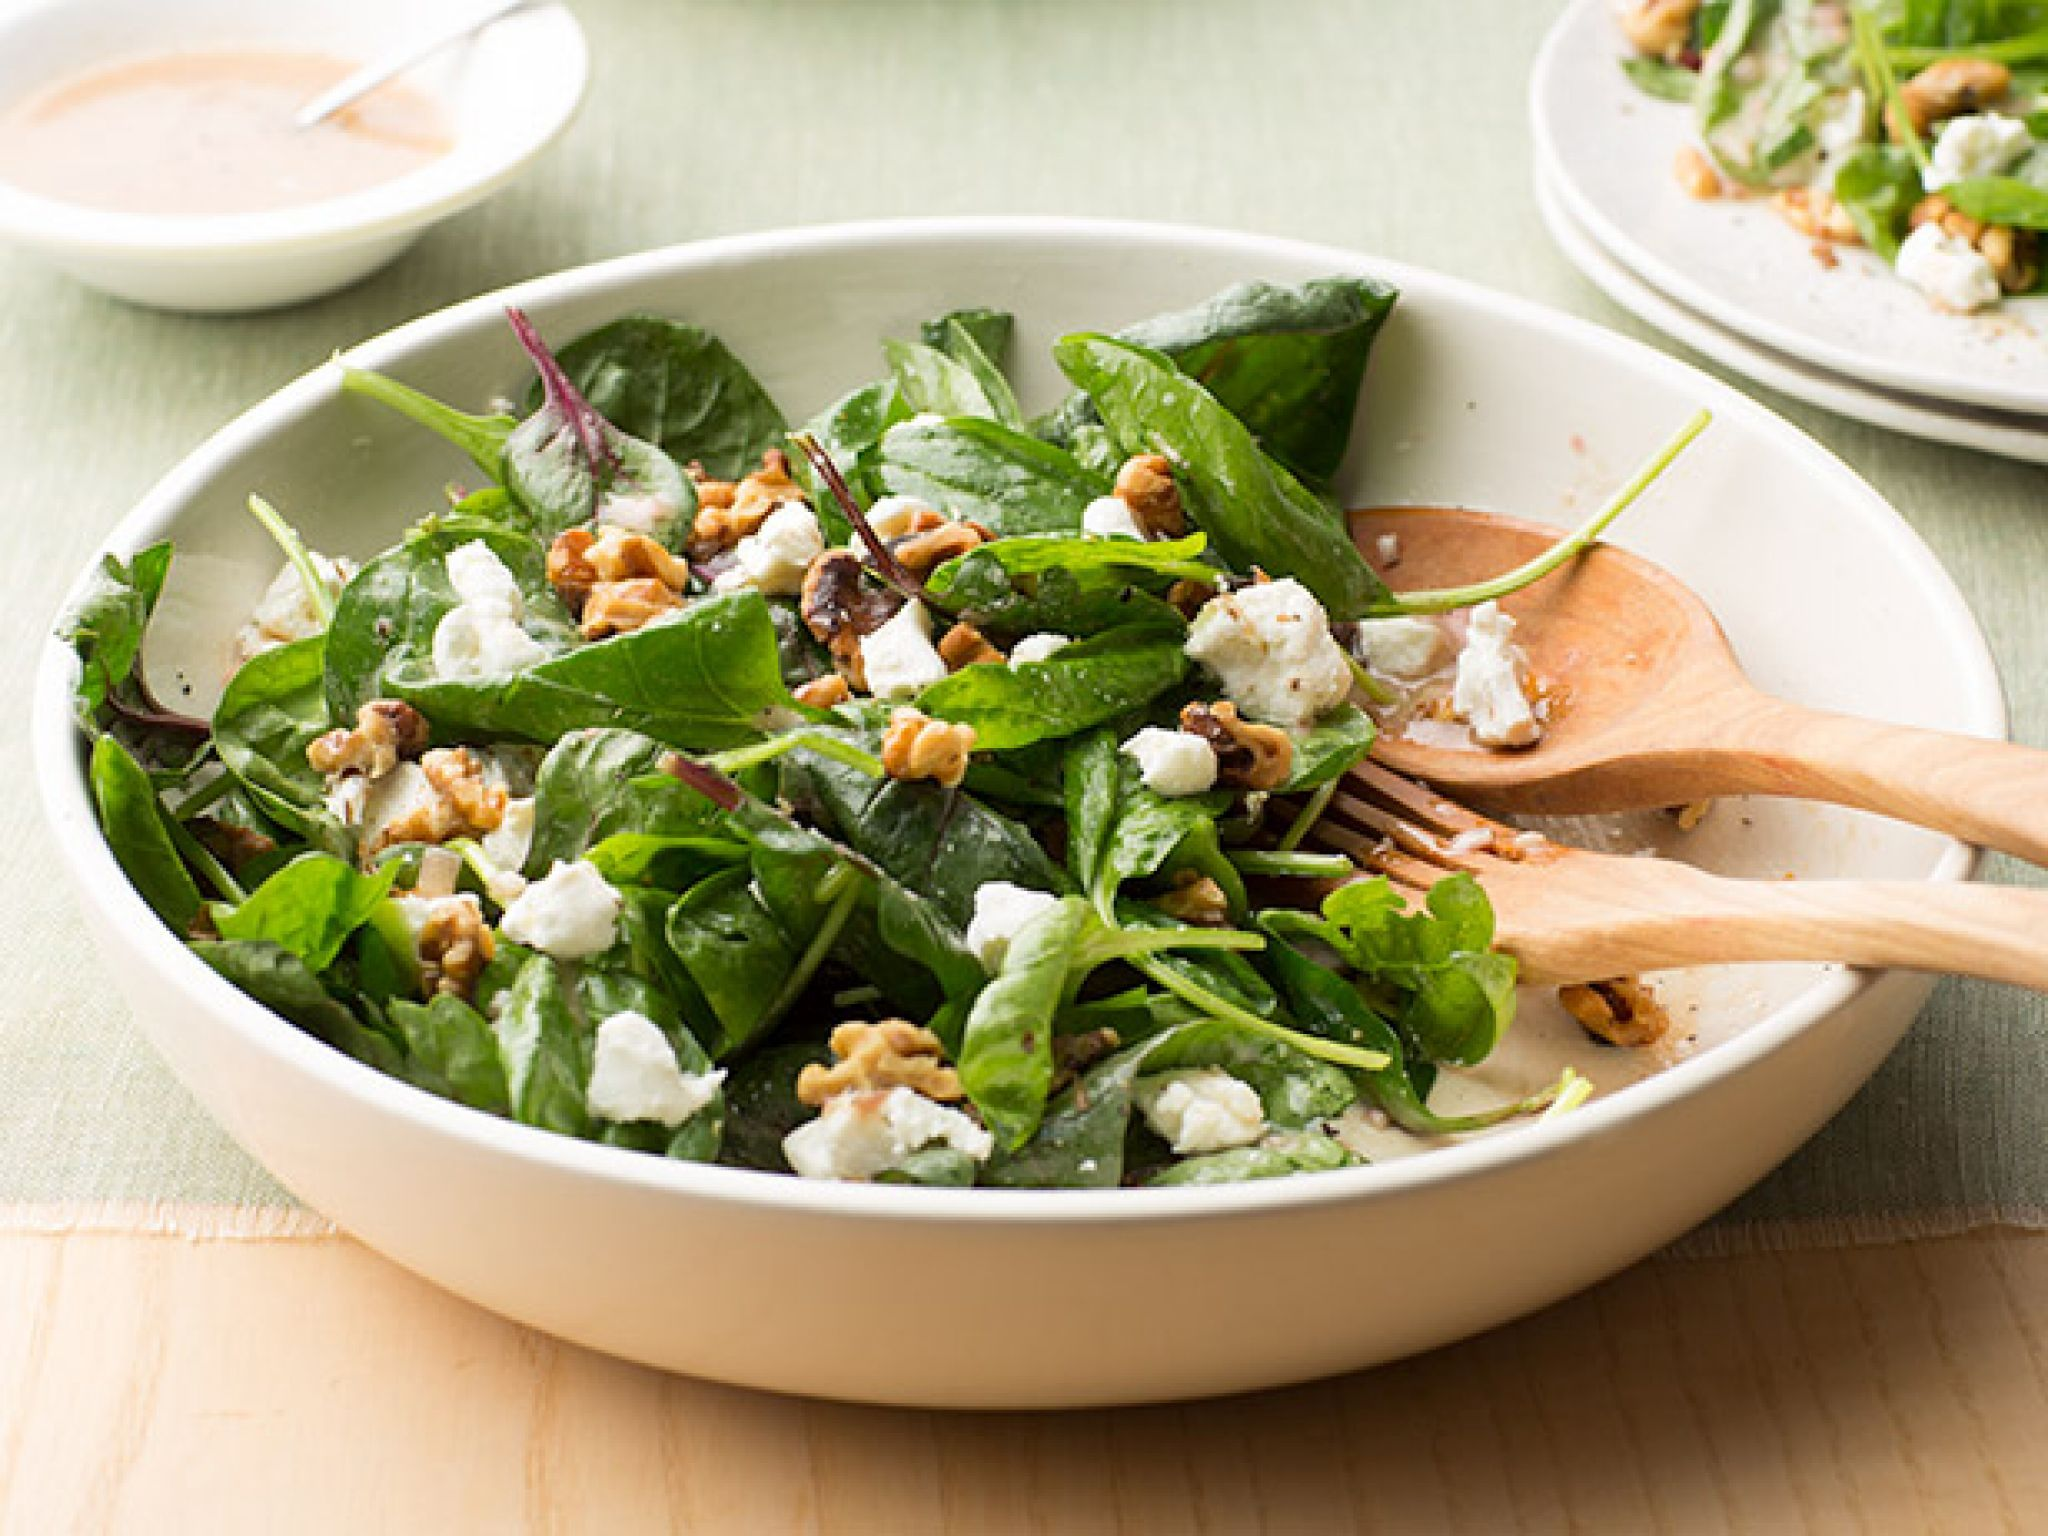 Check out spinach salad with goat cheese and walnuts its so easy spinach salad with goat cheese and walnuts forumfinder Gallery